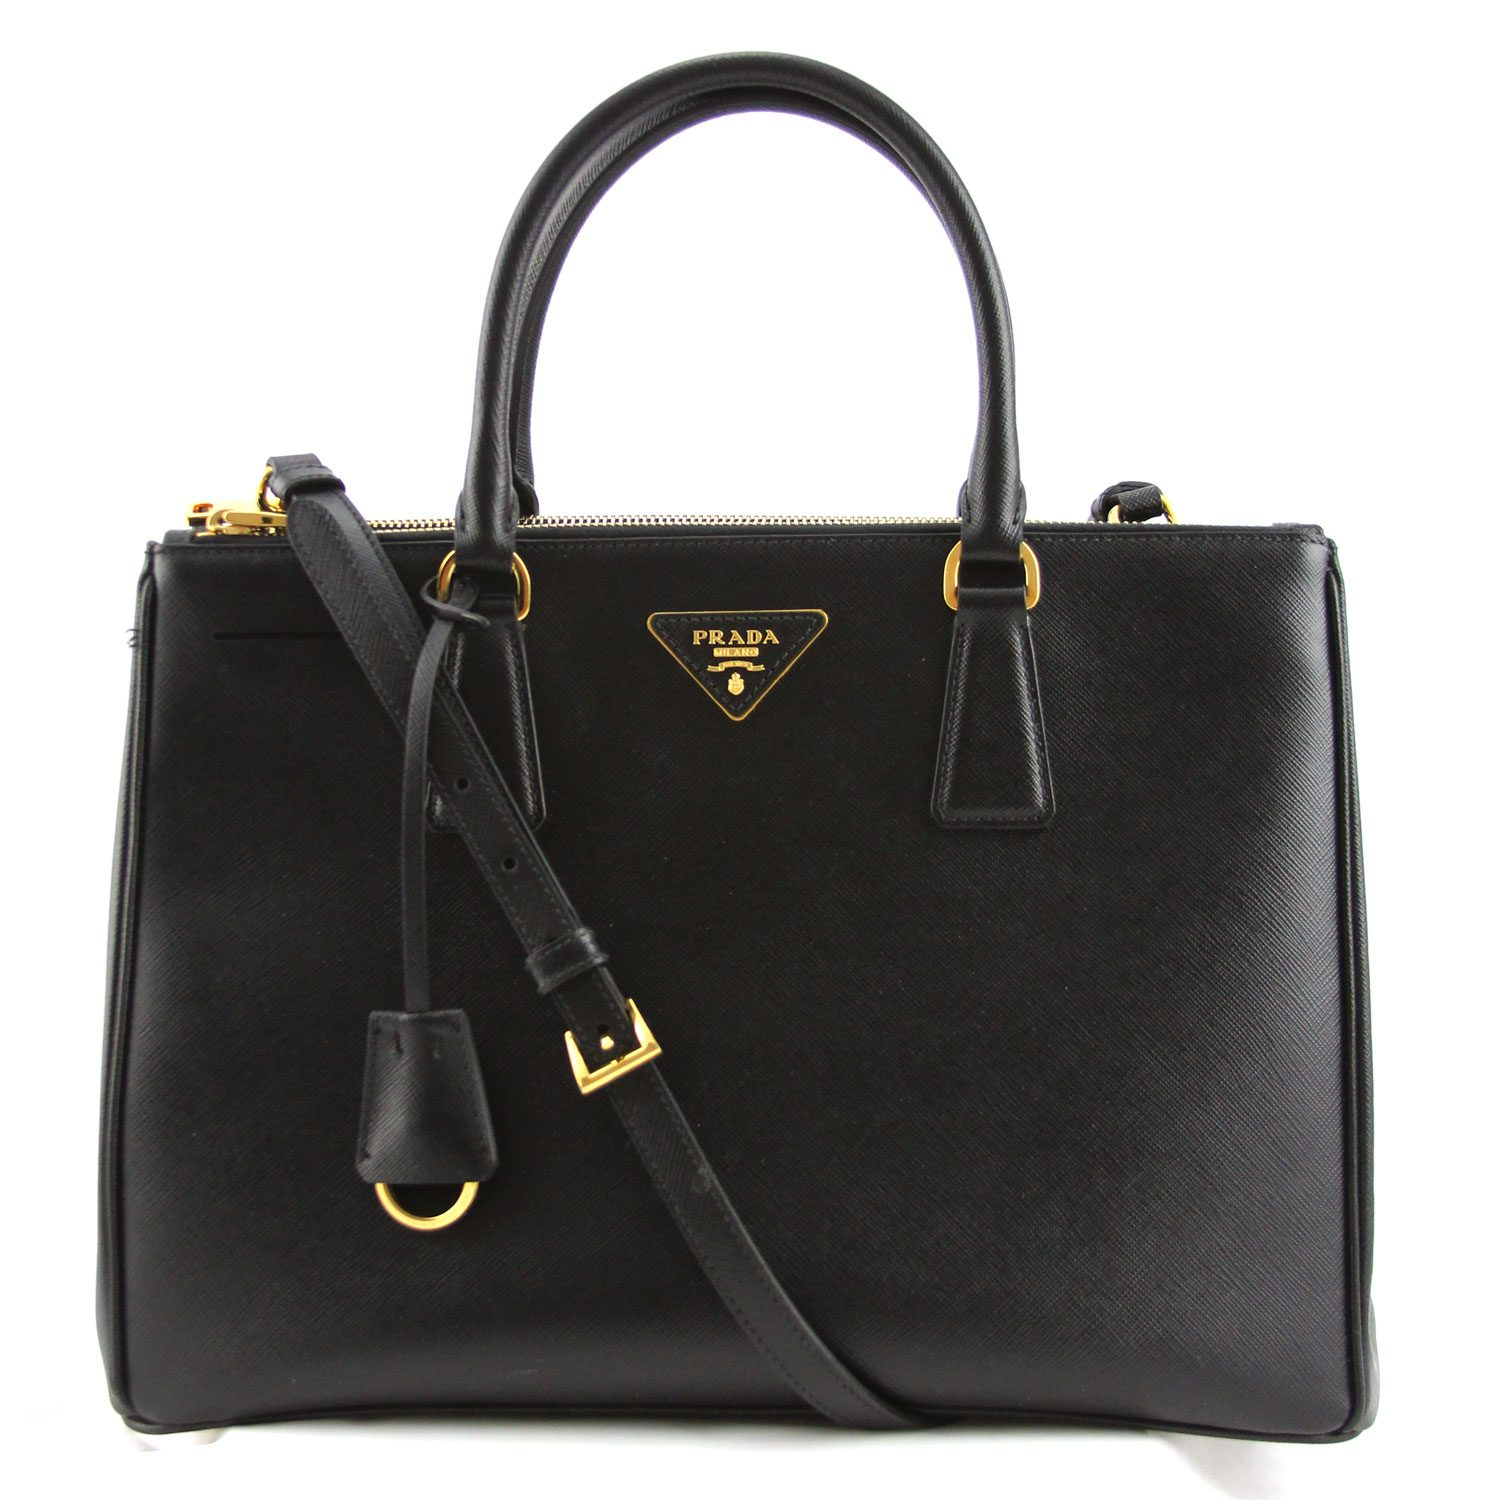 luxury designer handbags auckland